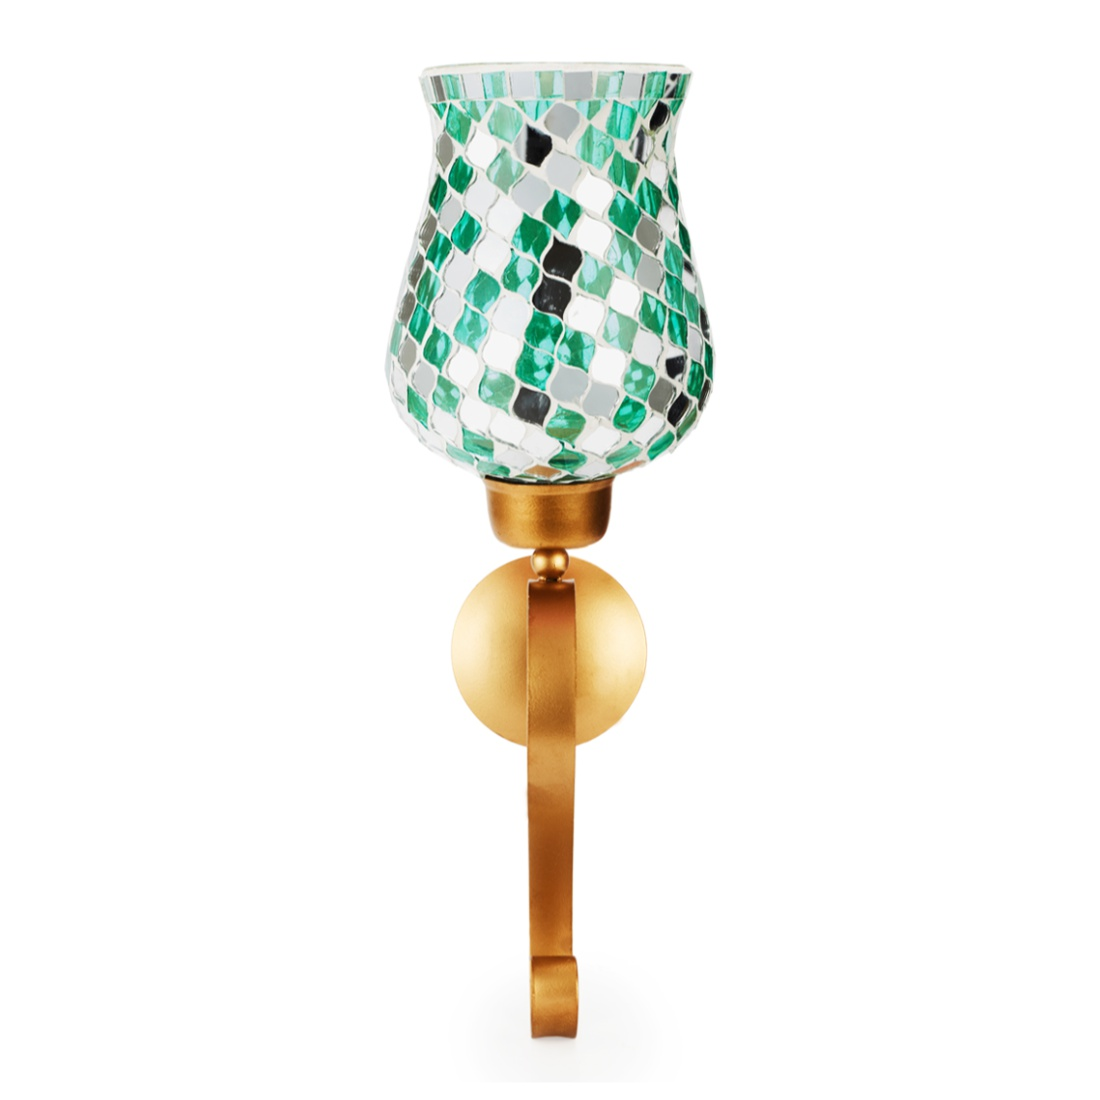 Ahana Mosaic Window Stand Candle Holder Teal Glass Small Wall Accents in Teal Colour by Living Essence